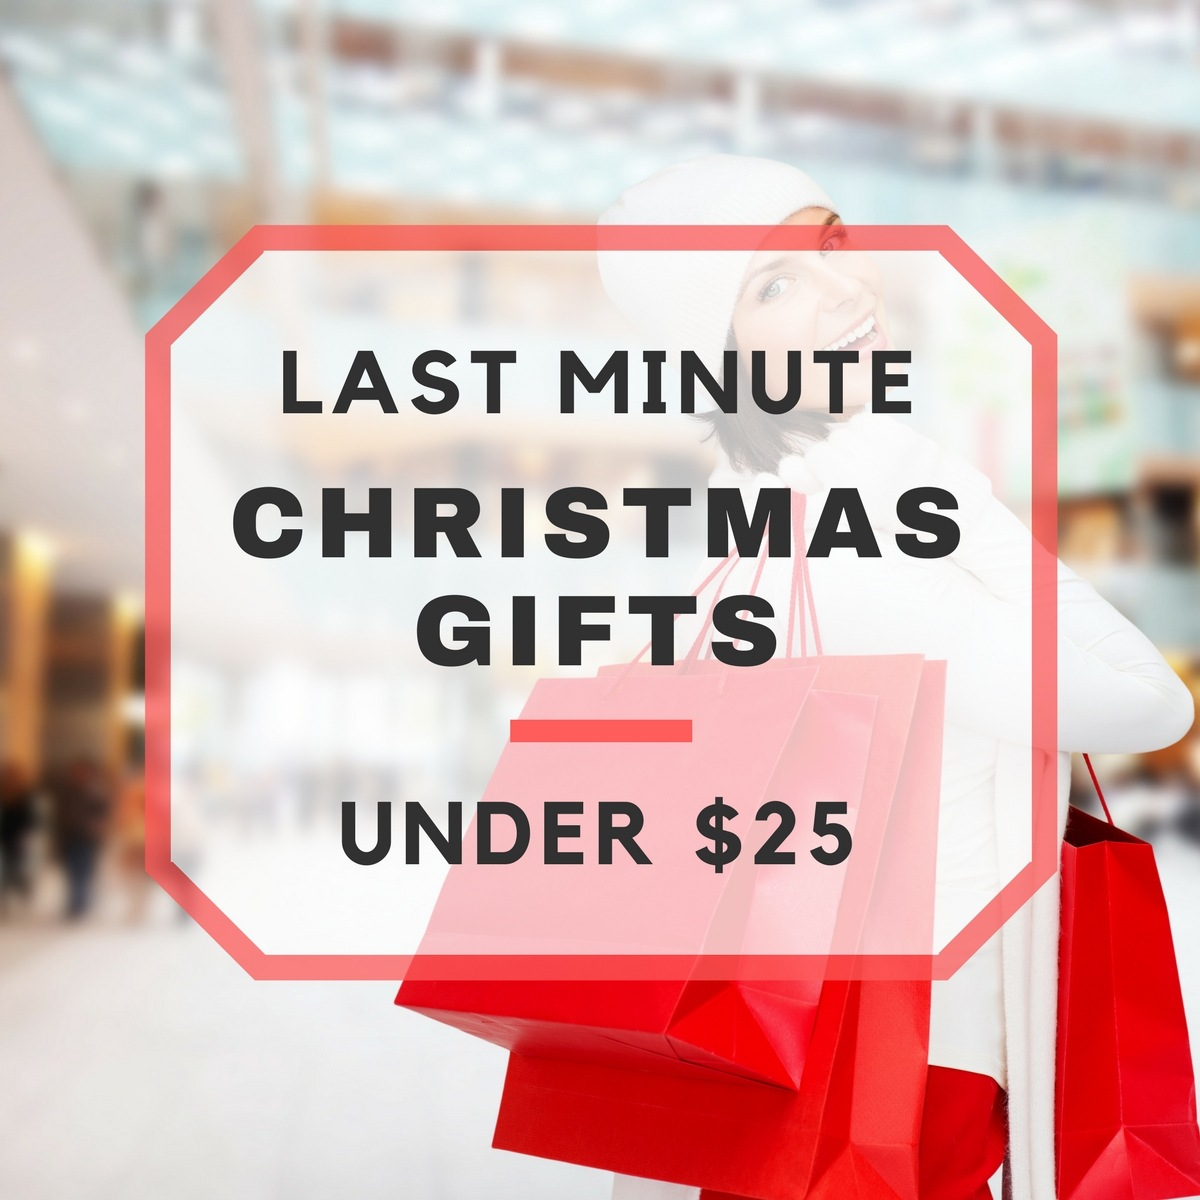 Last Minute Christmas Gifts Under $25